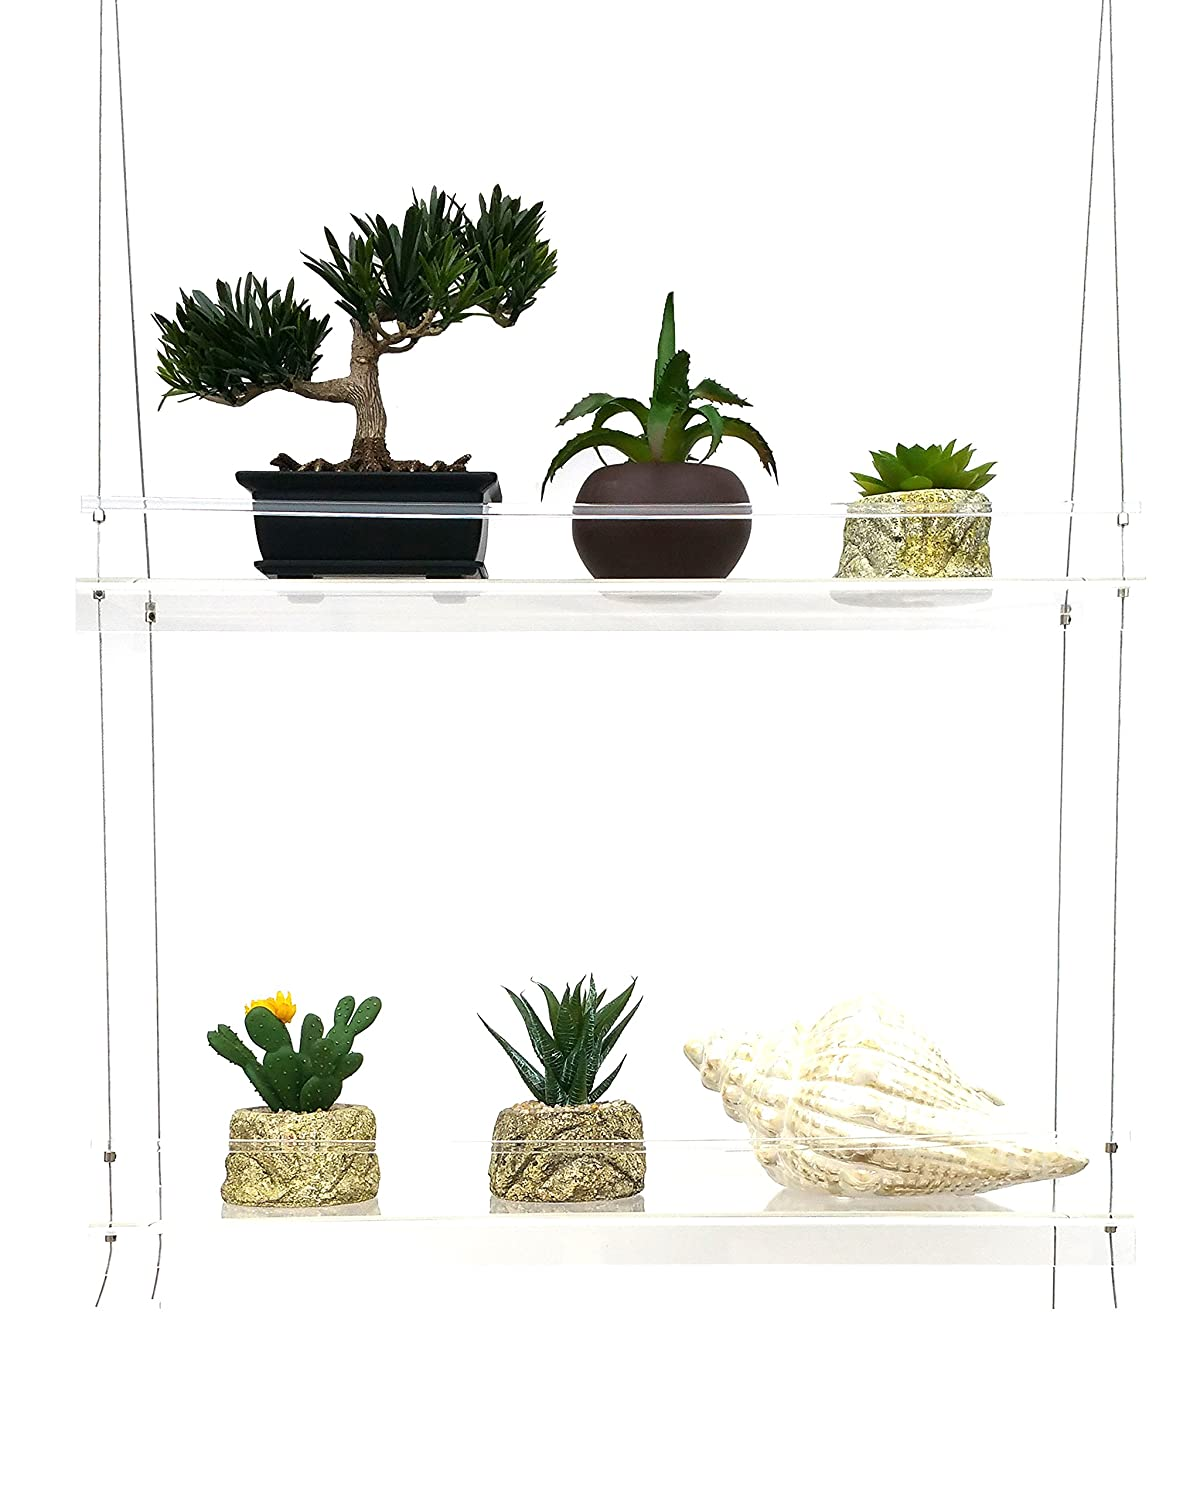 Sunshine Innovations LIMITED TIME LOW PRICE FOR FIRST TIME SELLING ON AMAZON Indoor Window Plant Shelves | For Plants, Herbs, Flowers & Decor | 2 Adjustable Acrylic Shelves